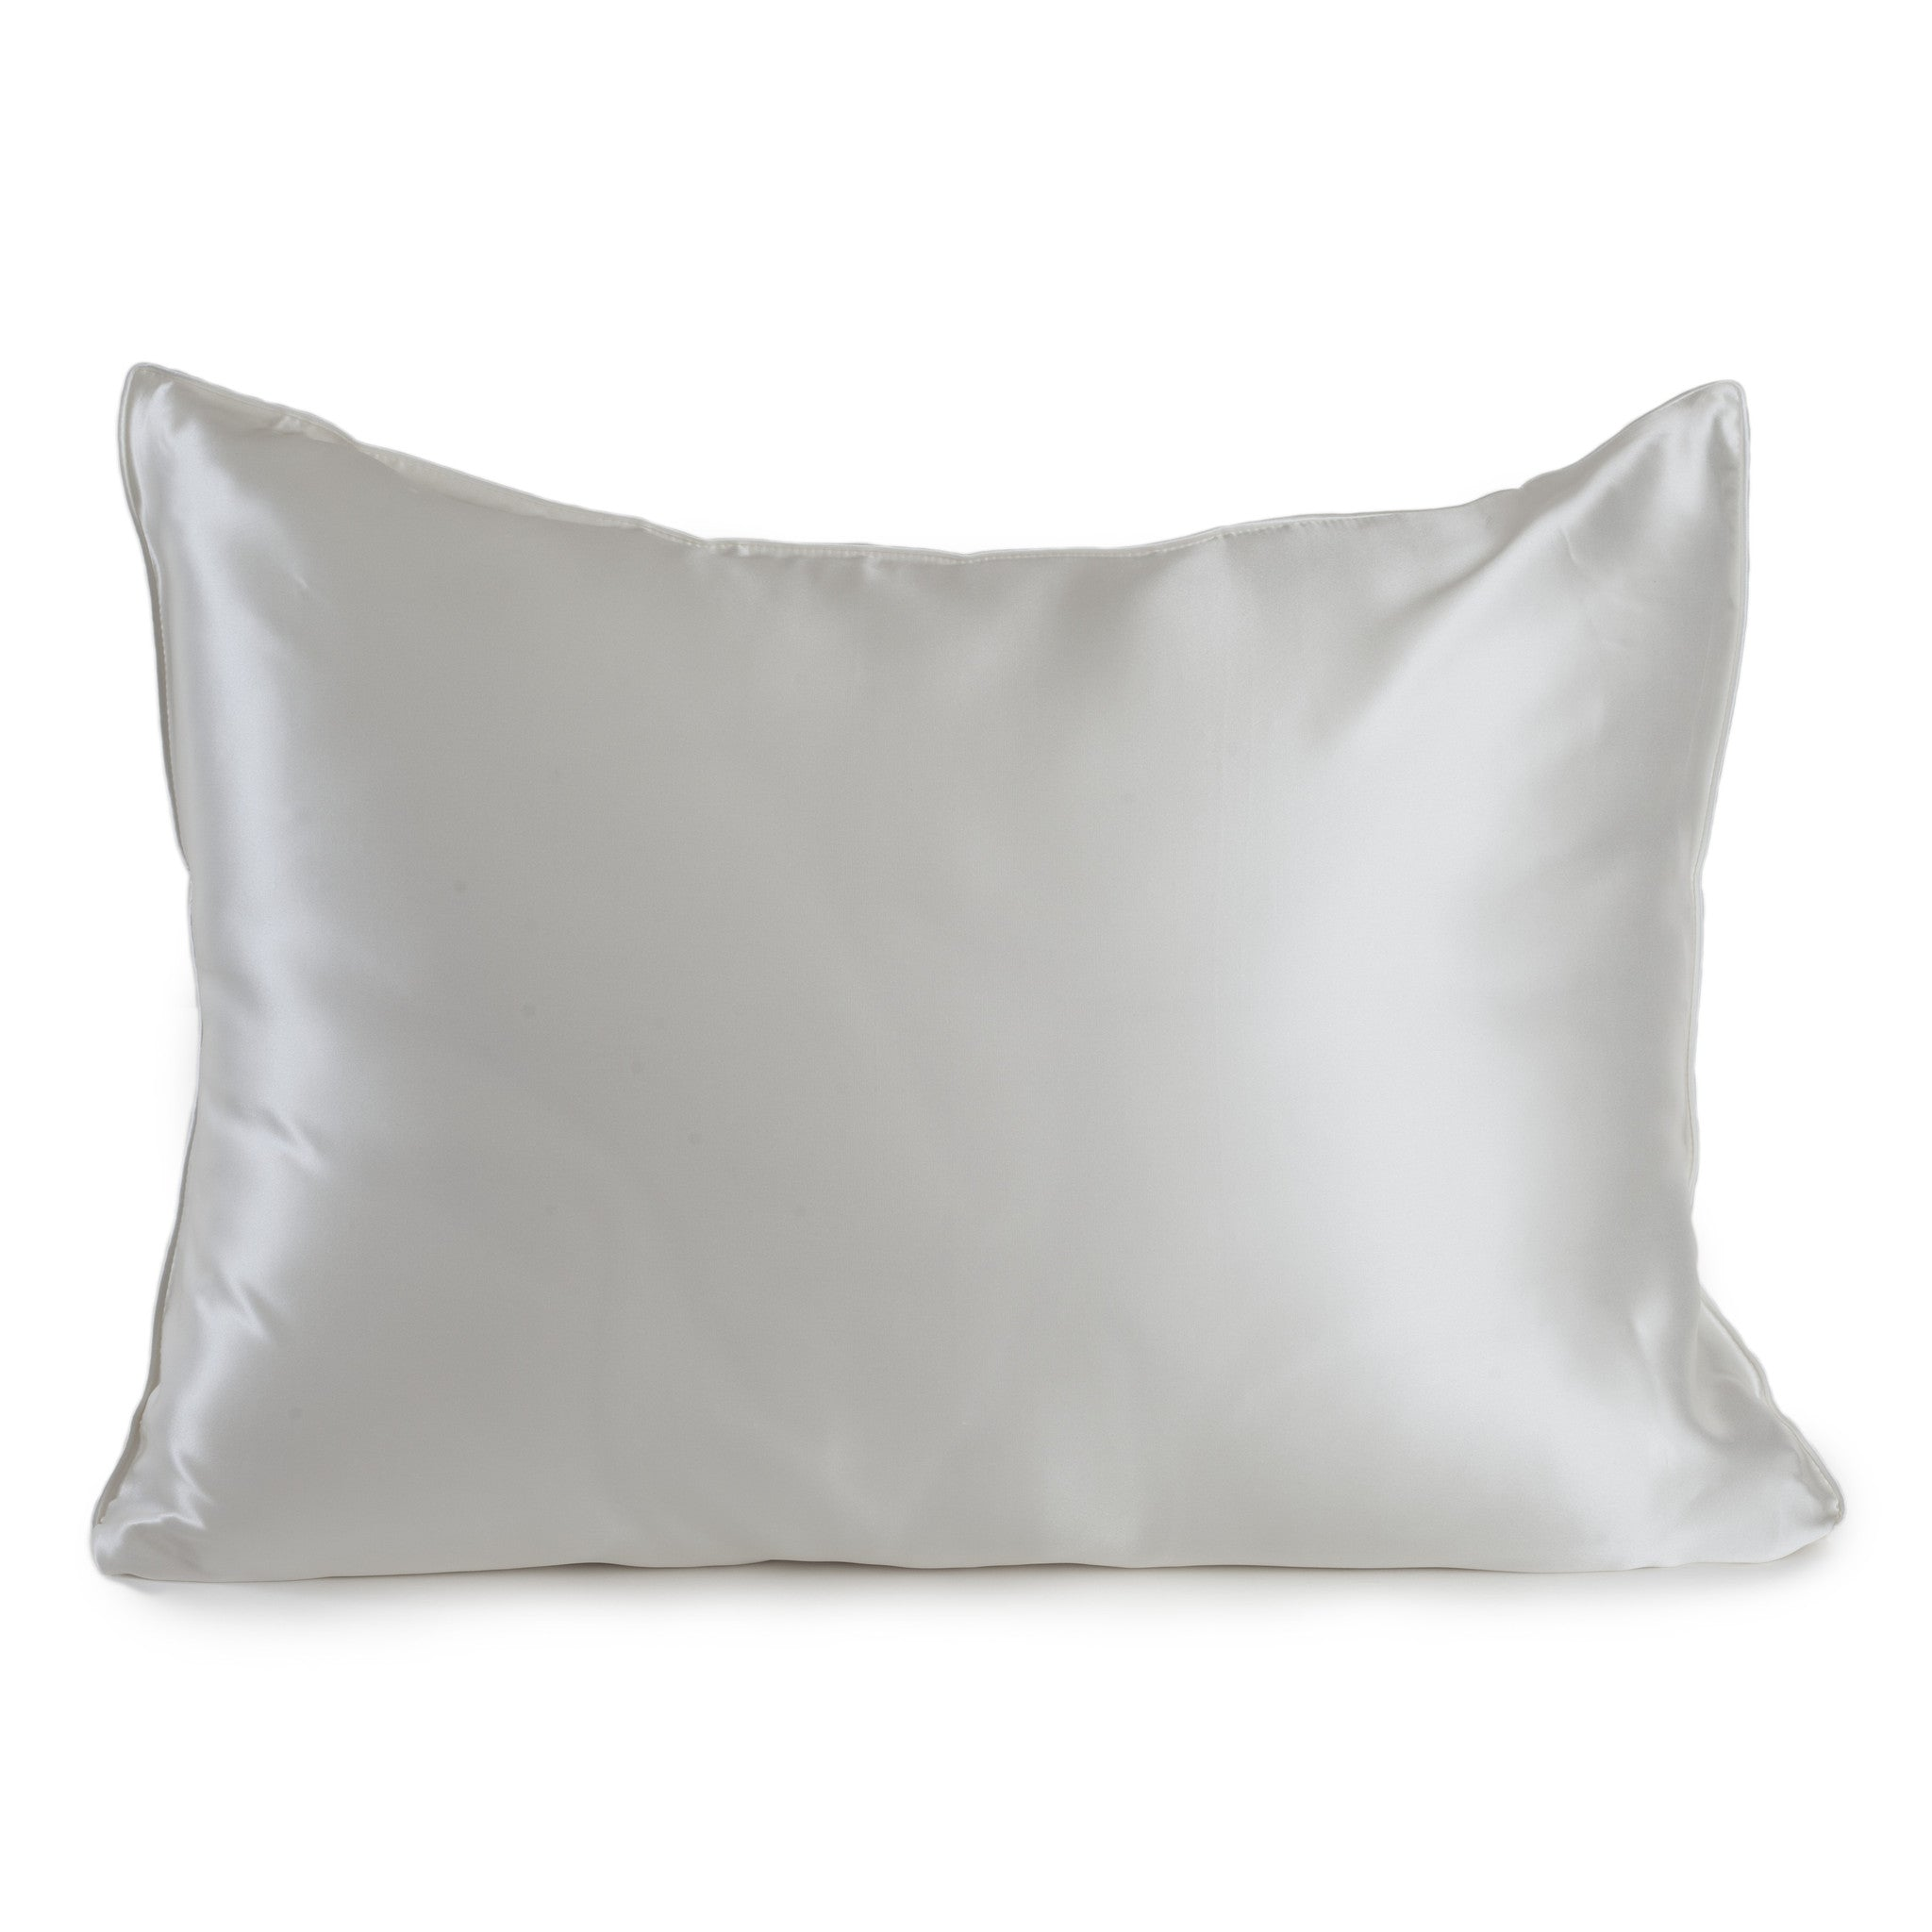 allow mulberry section home cotton covered to silk product comforter inspect quilt white you filled small premium duvet long zipped lujo the a grade